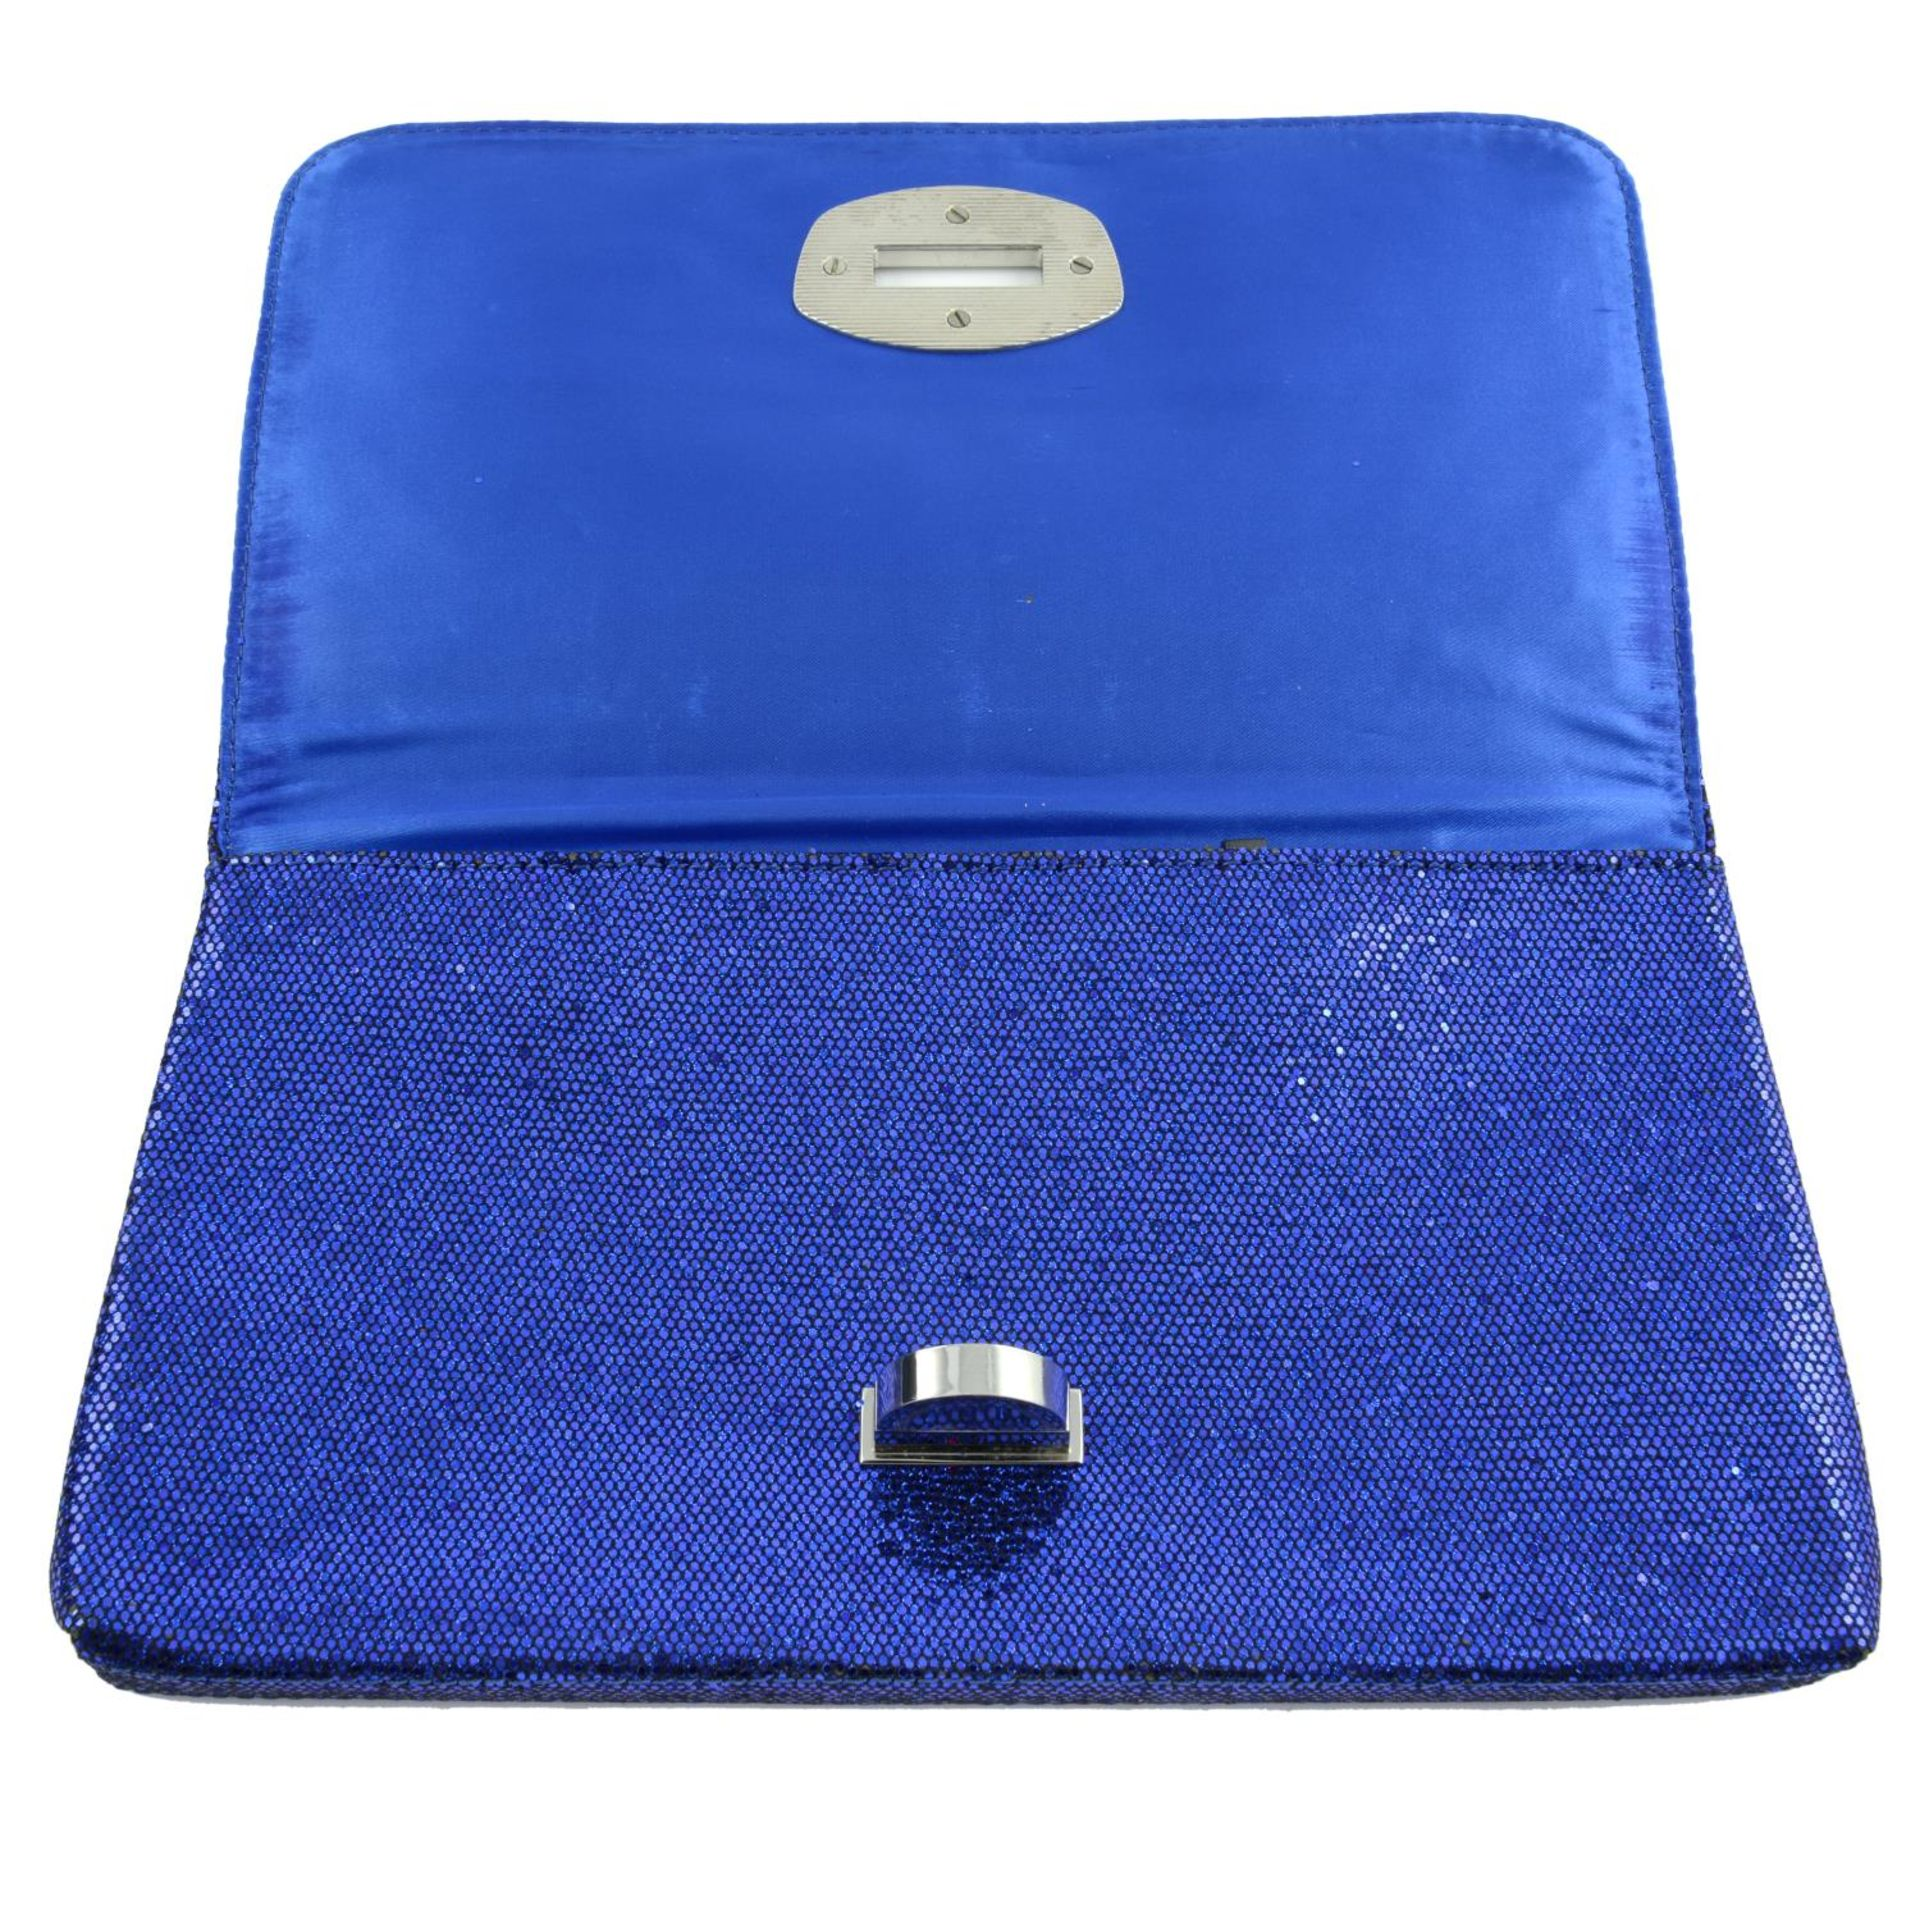 ARMANI EXCHANGE - a blue glitter clutch. - Image 4 of 4